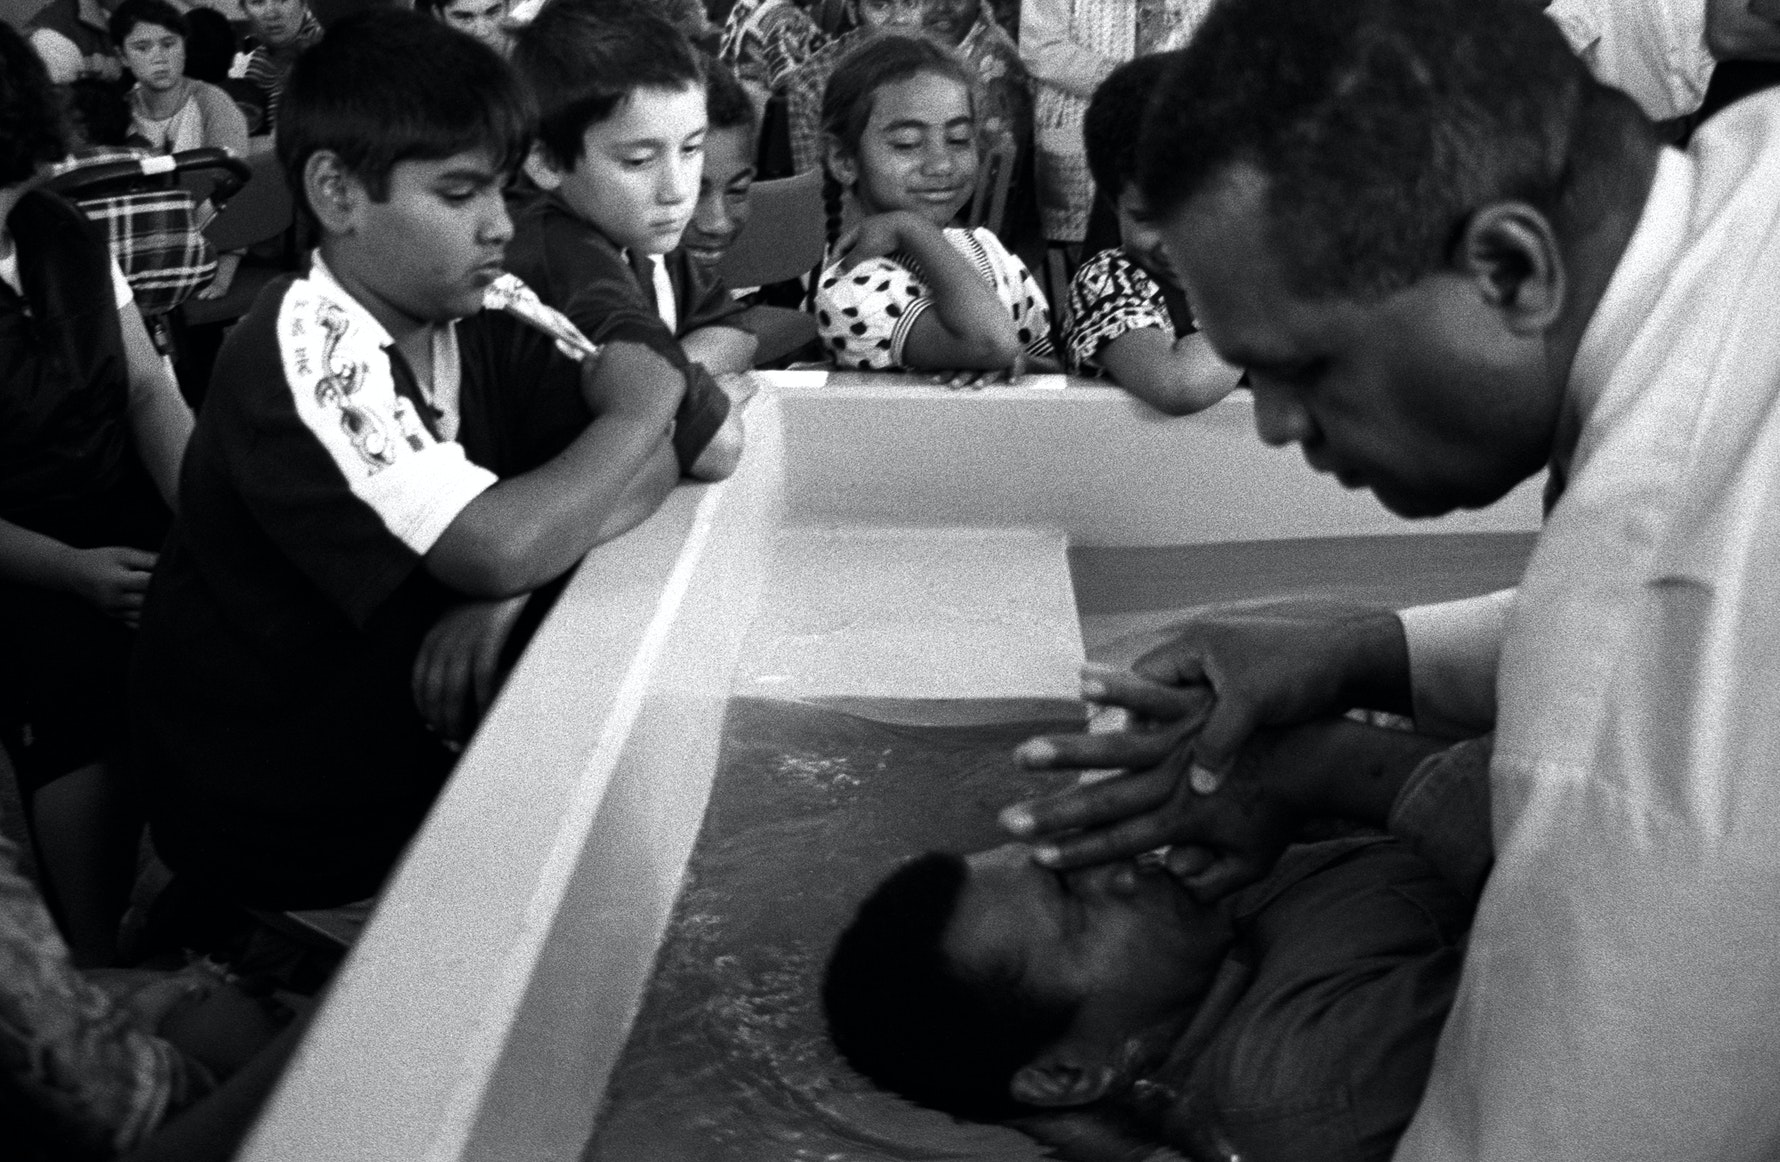 Water Baptism, Christian International Life Centre